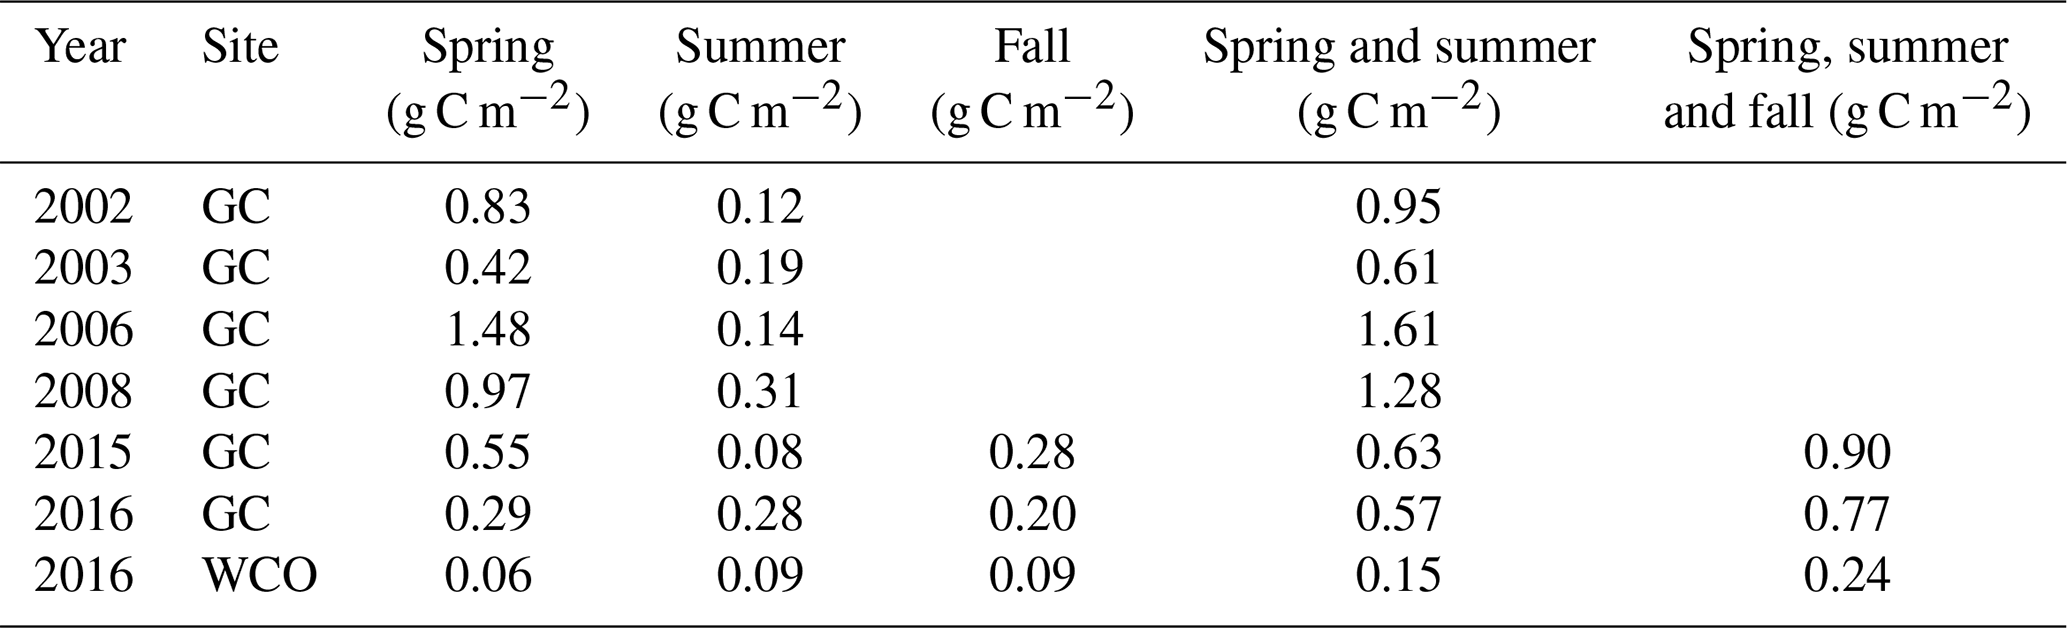 HESS - Assessing inter-annual and seasonal patterns of DOC